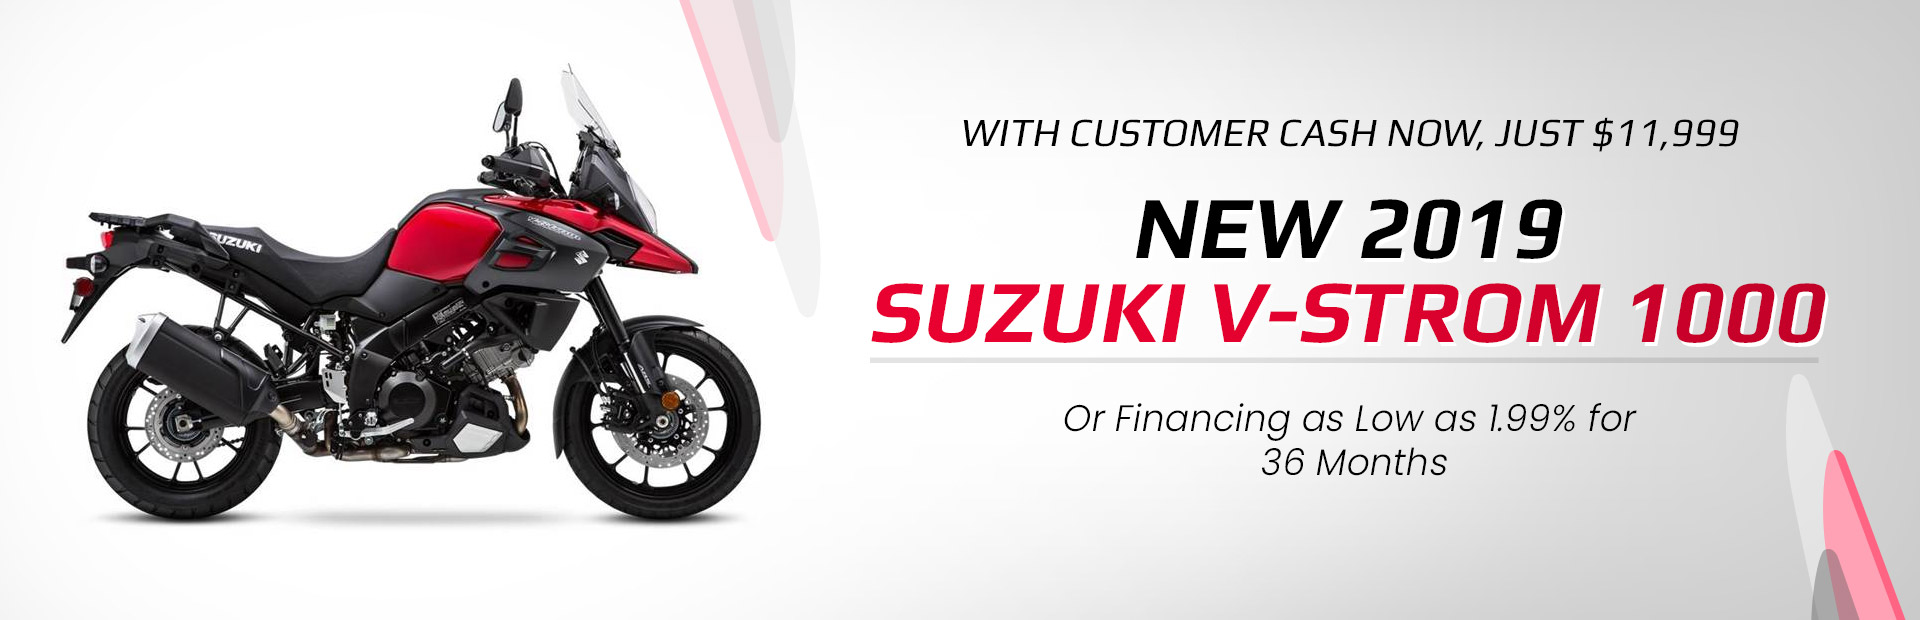 New 2019 Suzuki V-Strom 1000. With Customer Cash Now, Just $11,999. Or Financing as Low as 1.99% for